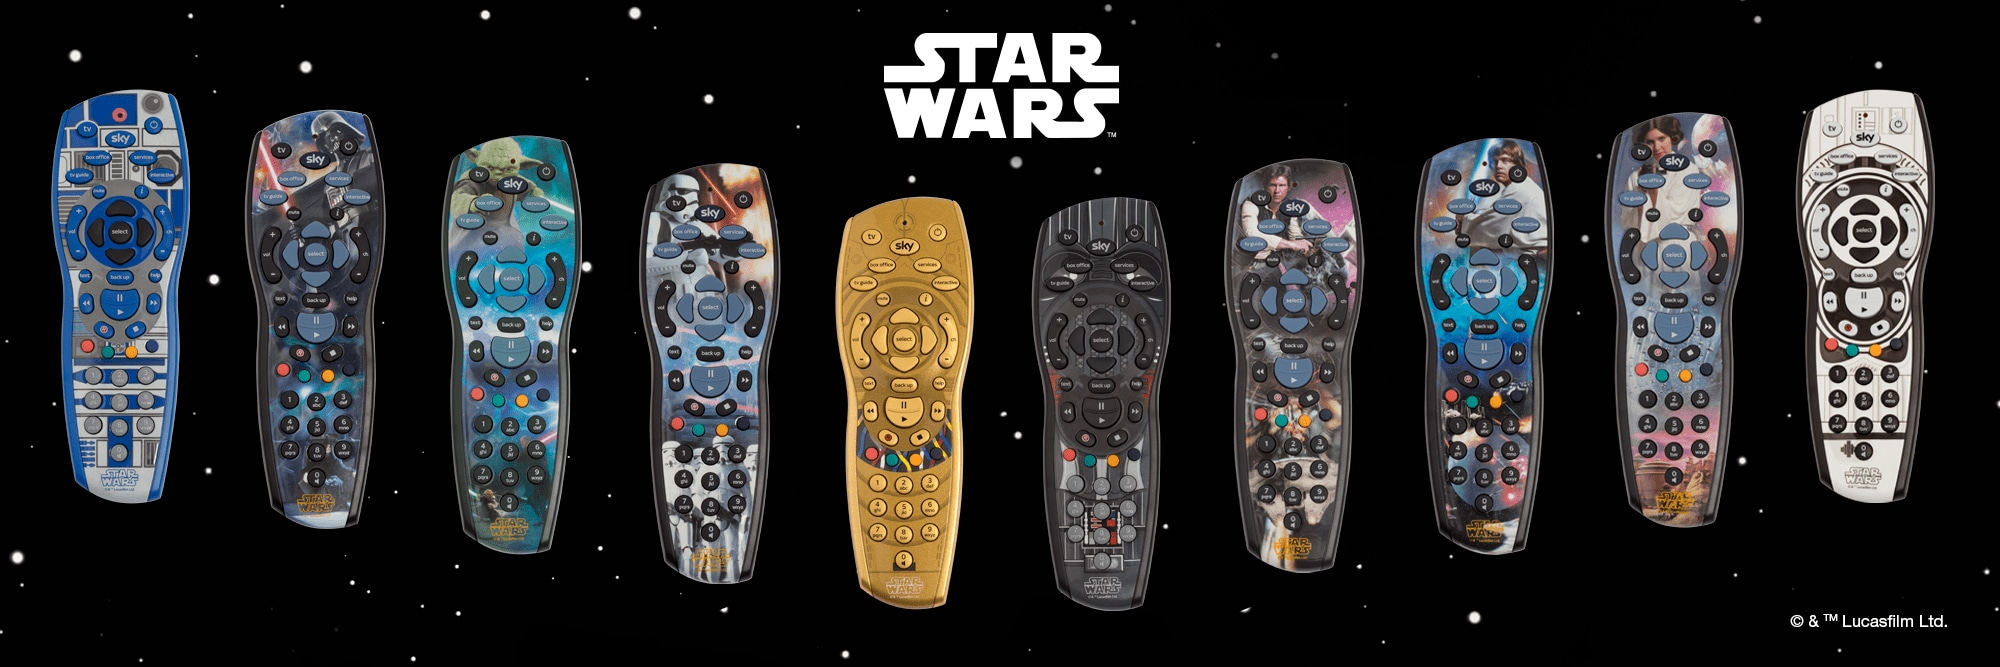 How To Use Your Sky Remote Control Help 3 Way Switch Wiring Diagram For Amp Standby 10 Exclusive Star Wars Hd Remotes